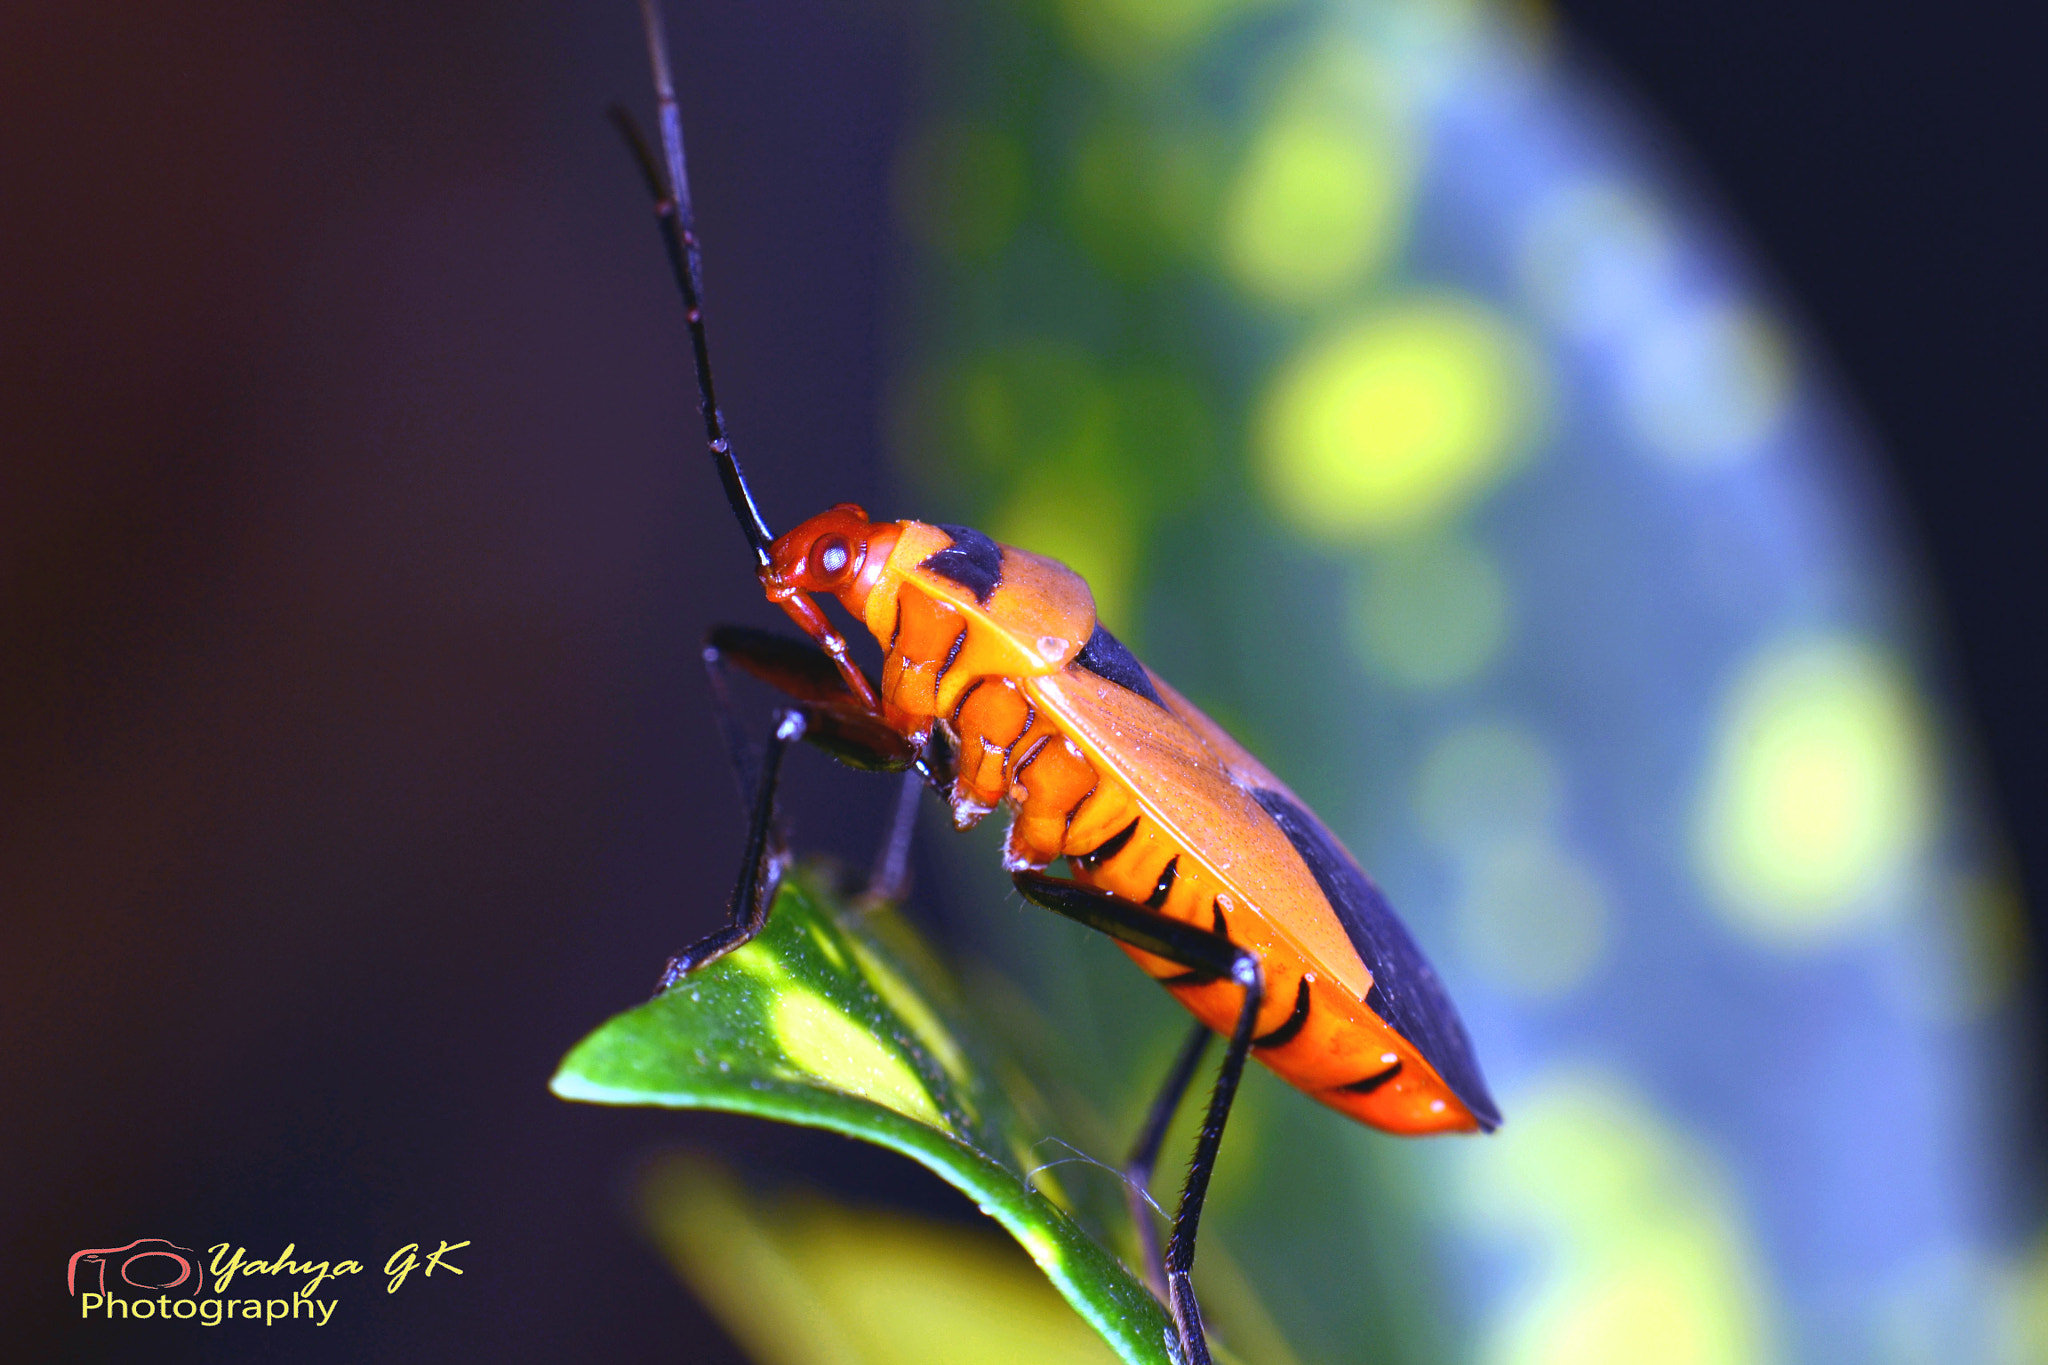 Photograph The Orange Insects by yahya GK™ on 500px